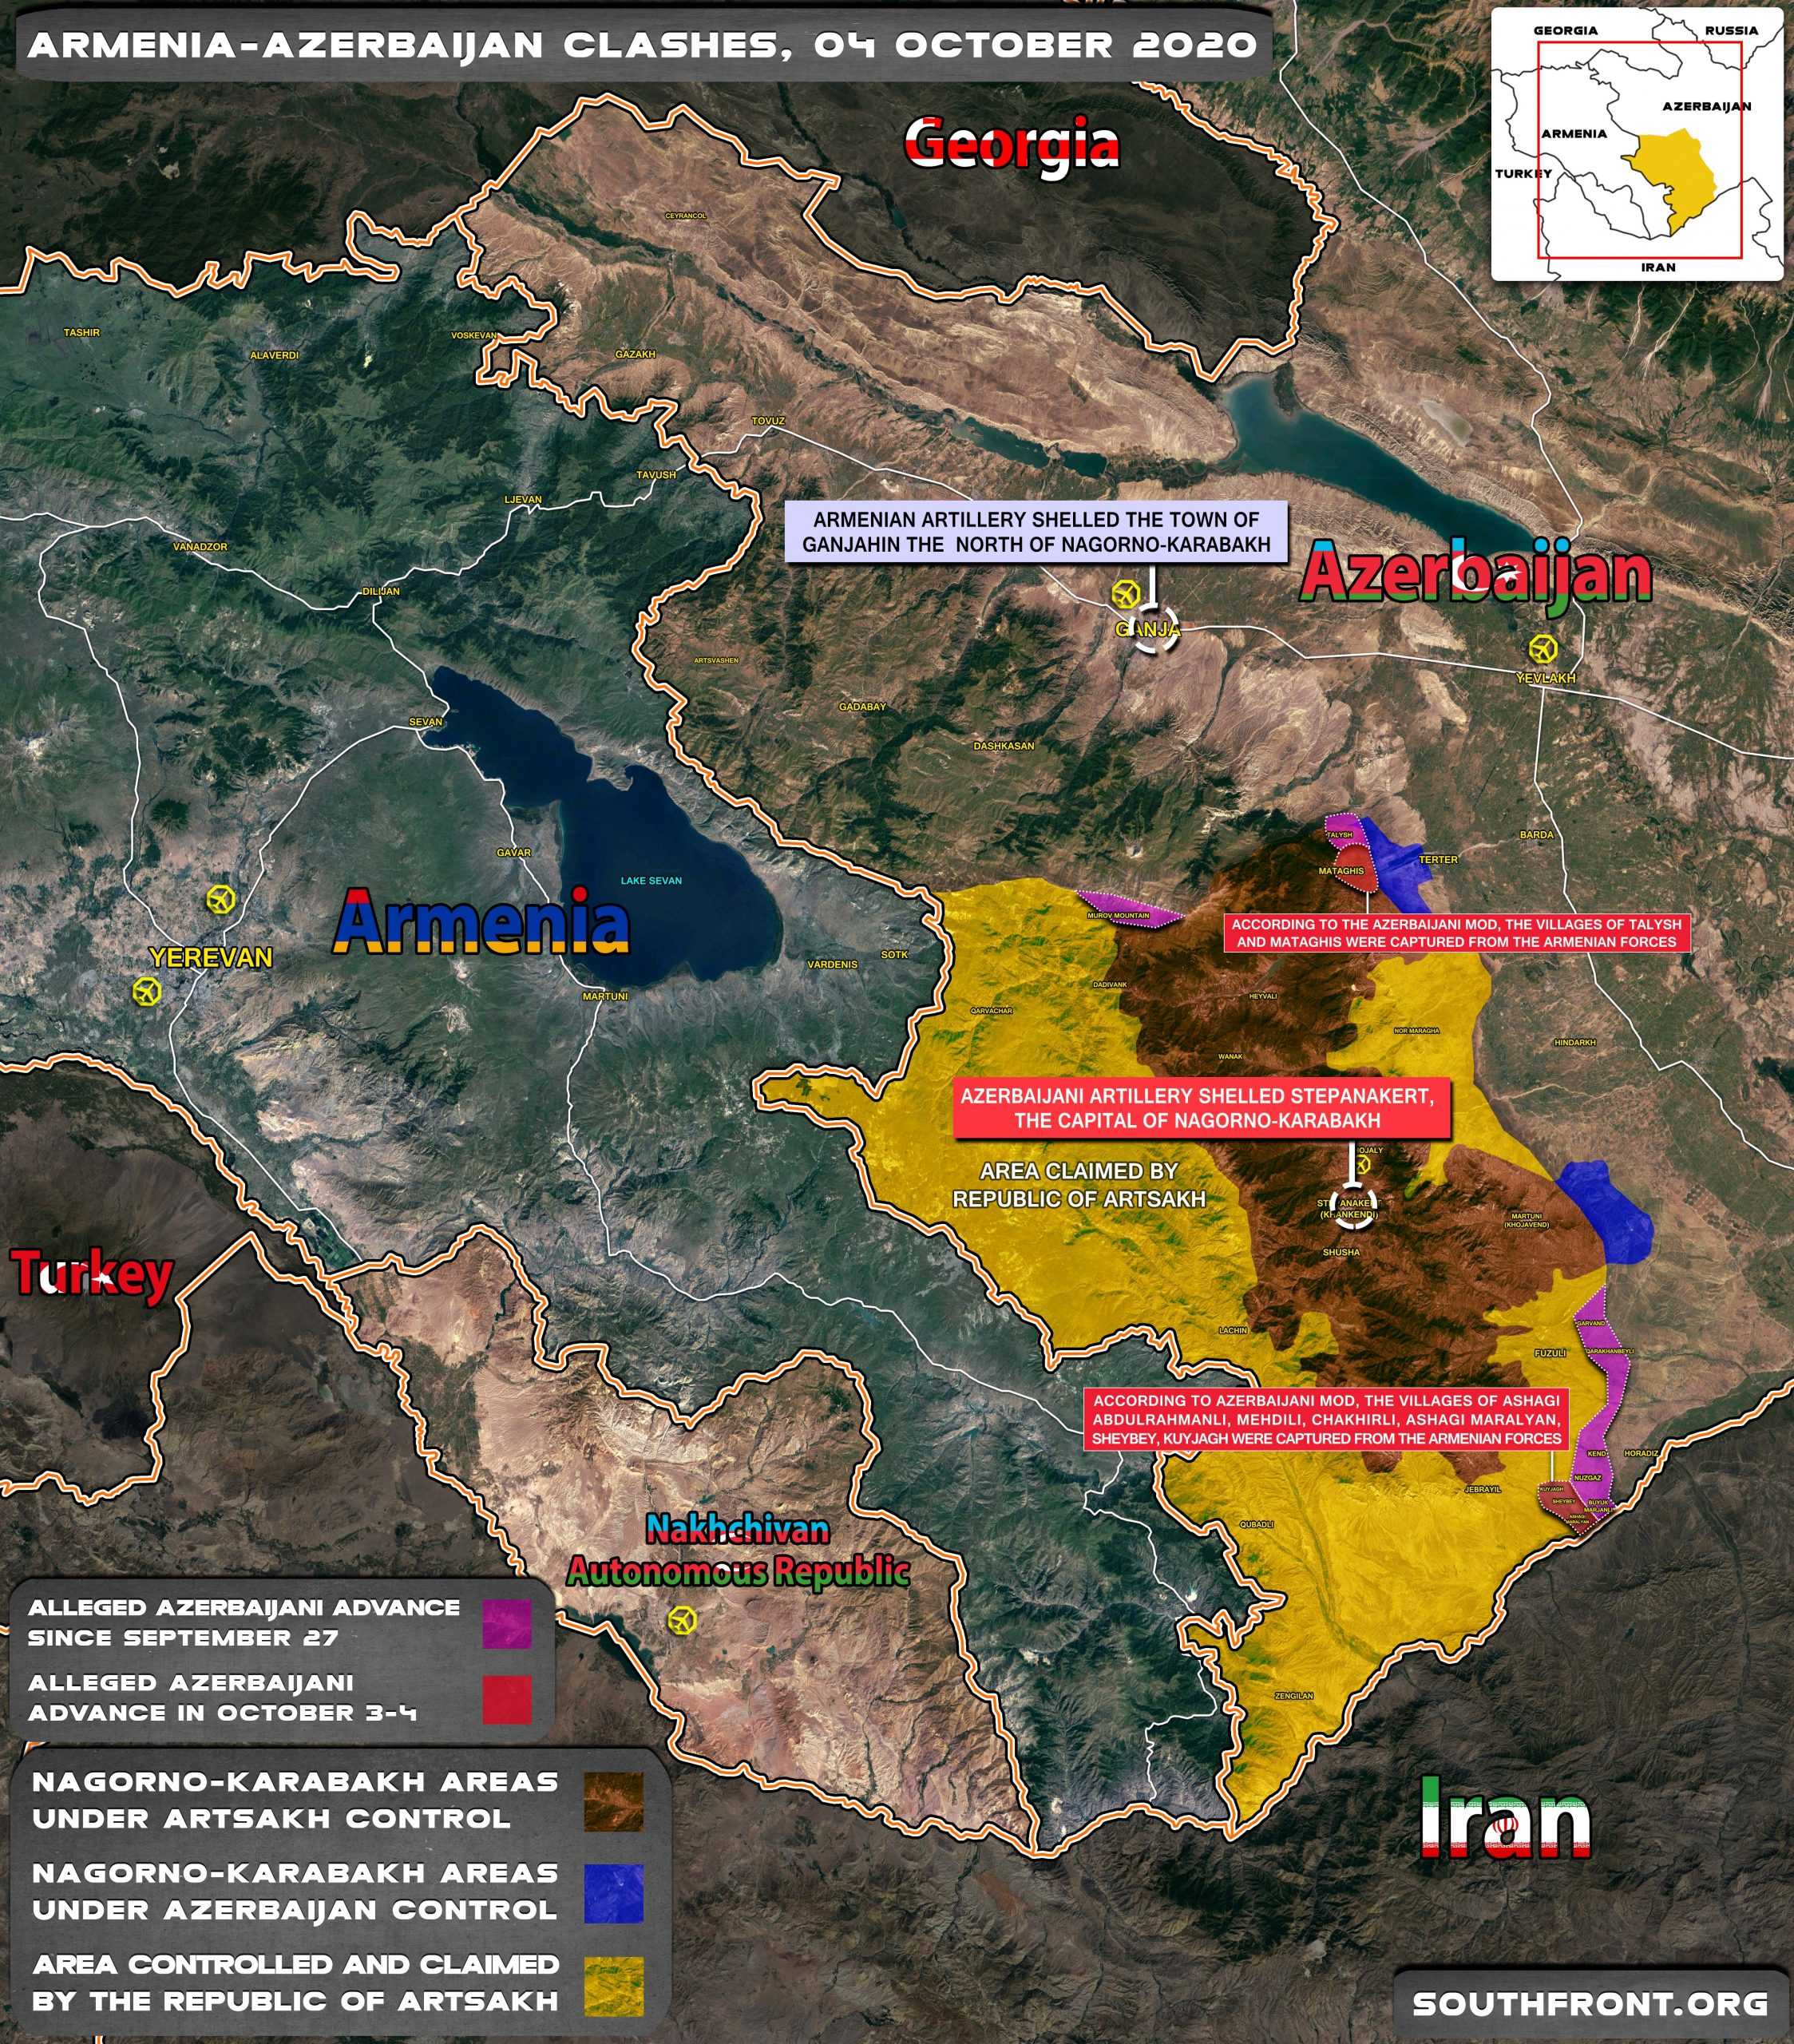 Alleged Azerbaijani Advance In Nagorno Karabakh On October 4 Map Update